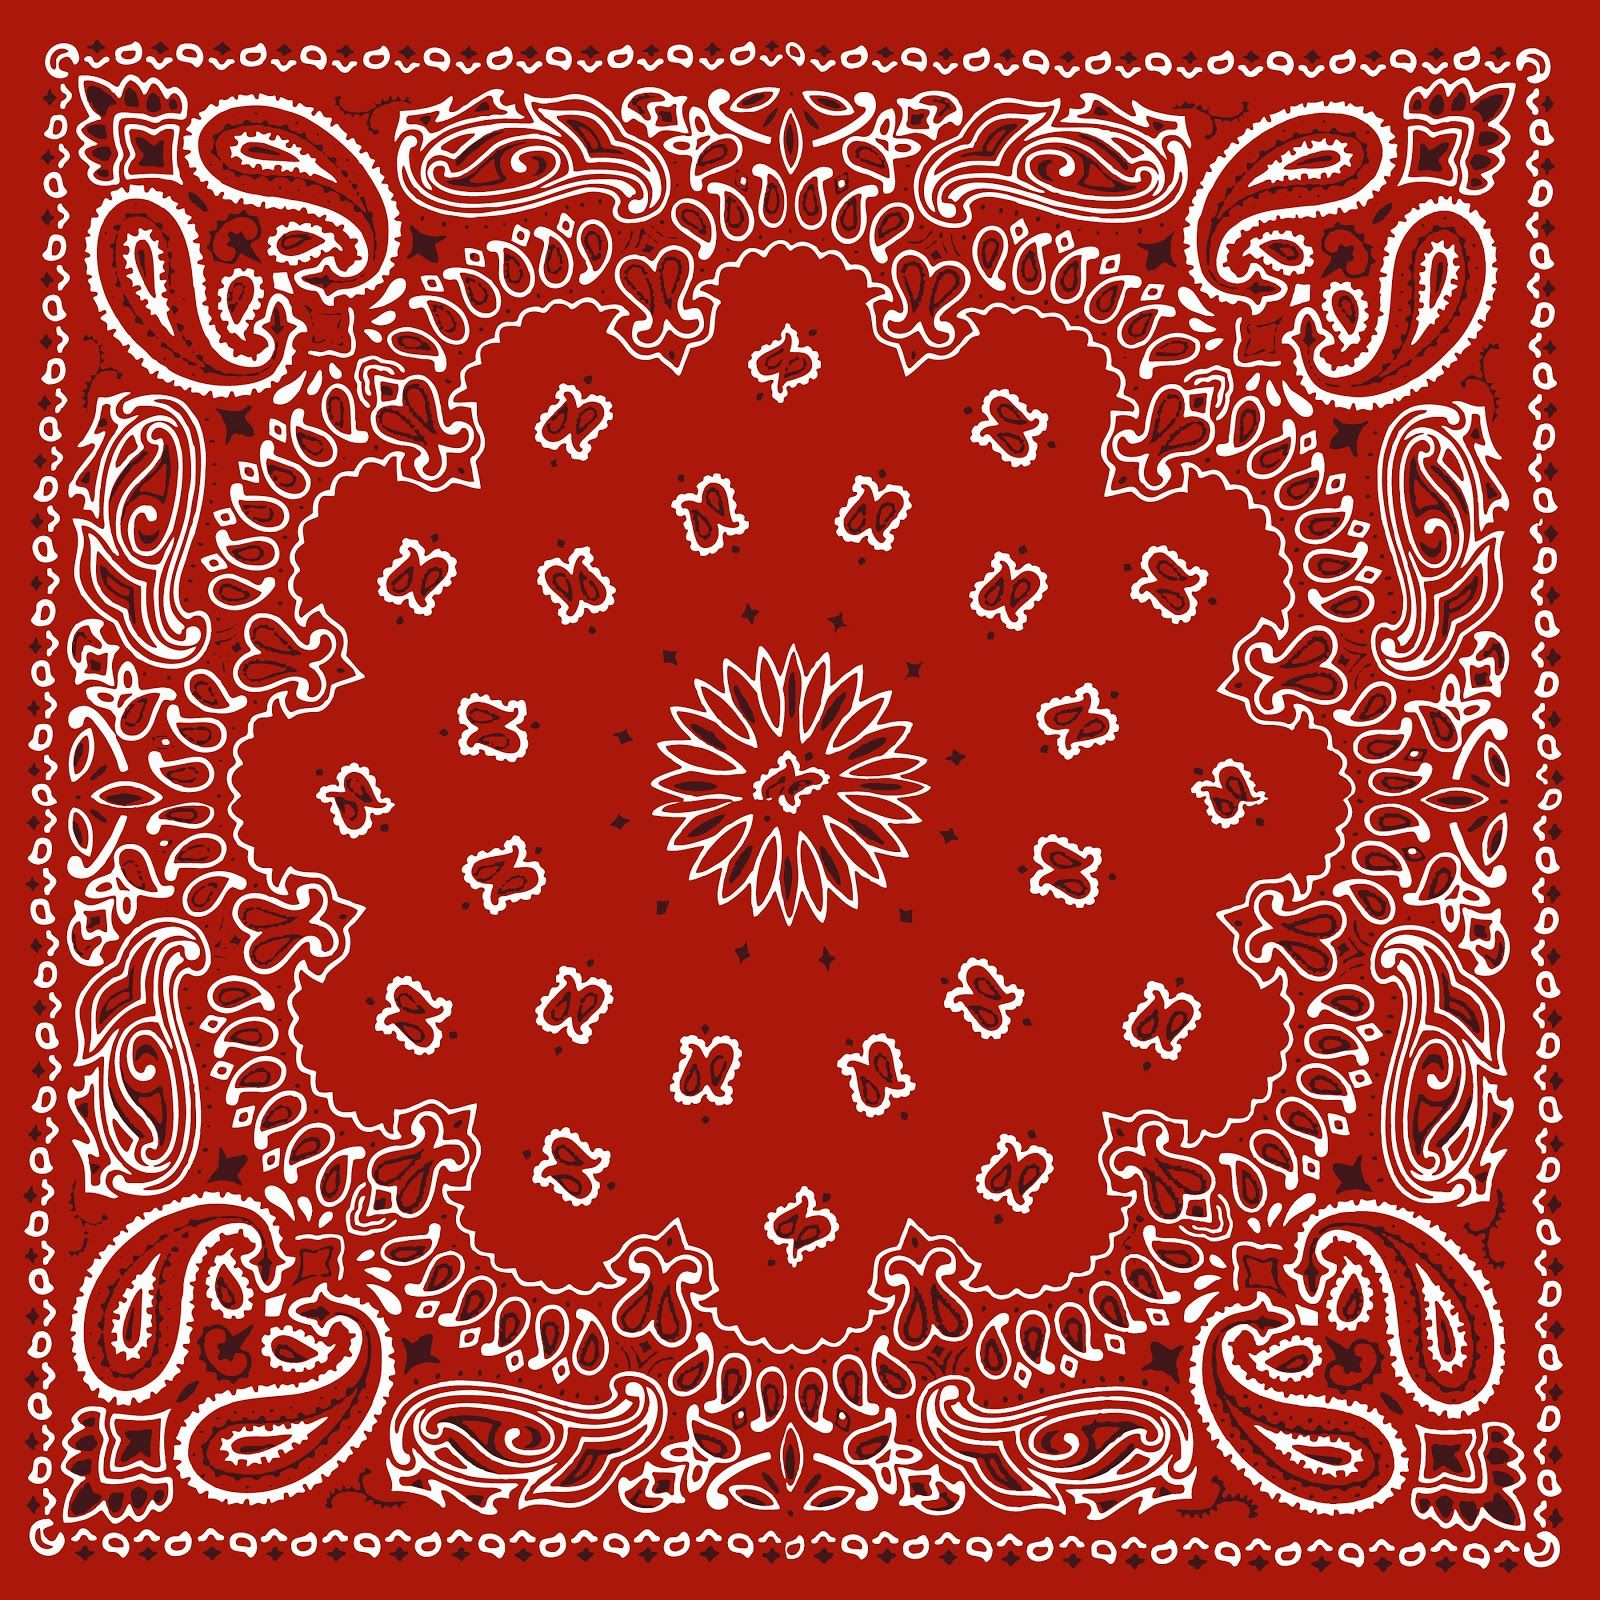 RED BANDANA, PRINTABLE BACKGROUND BACKGROUNDS